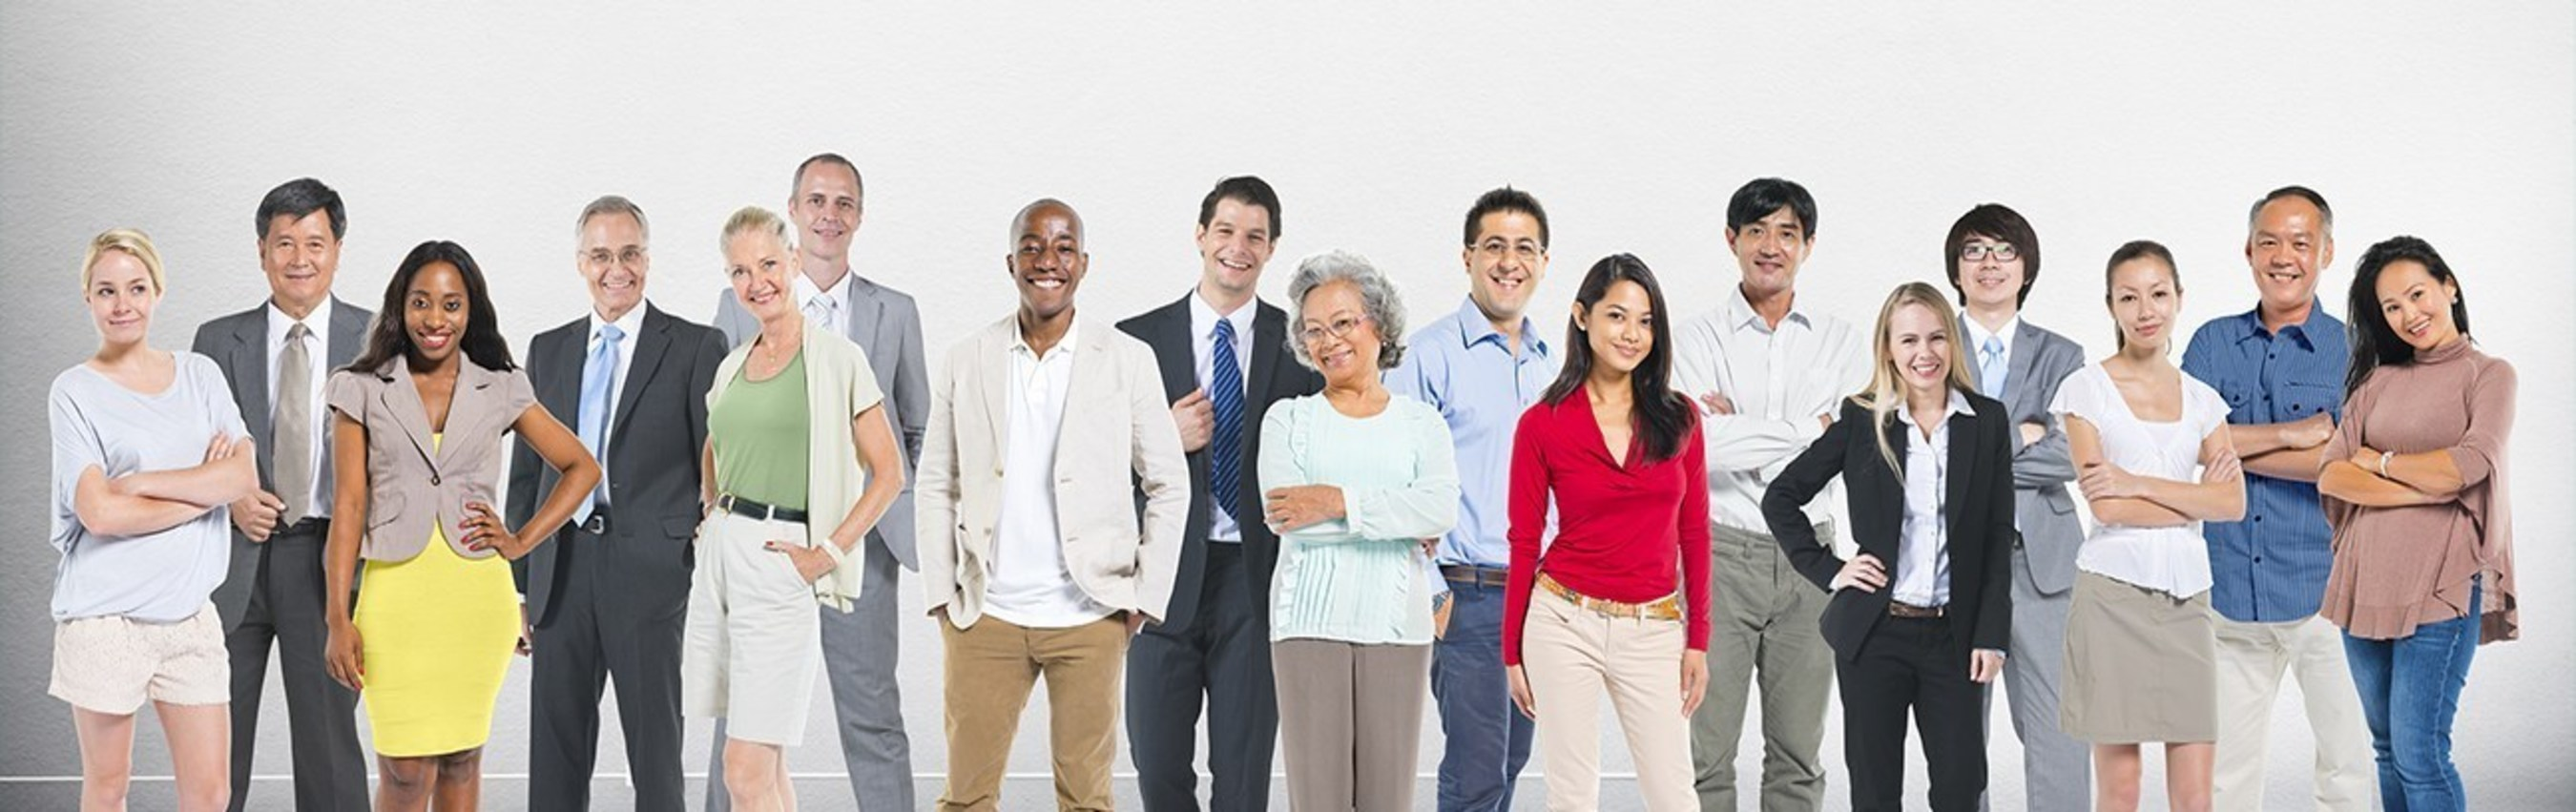 Hire Great People, Boost Diversity, Ensure OFCCP Compliance